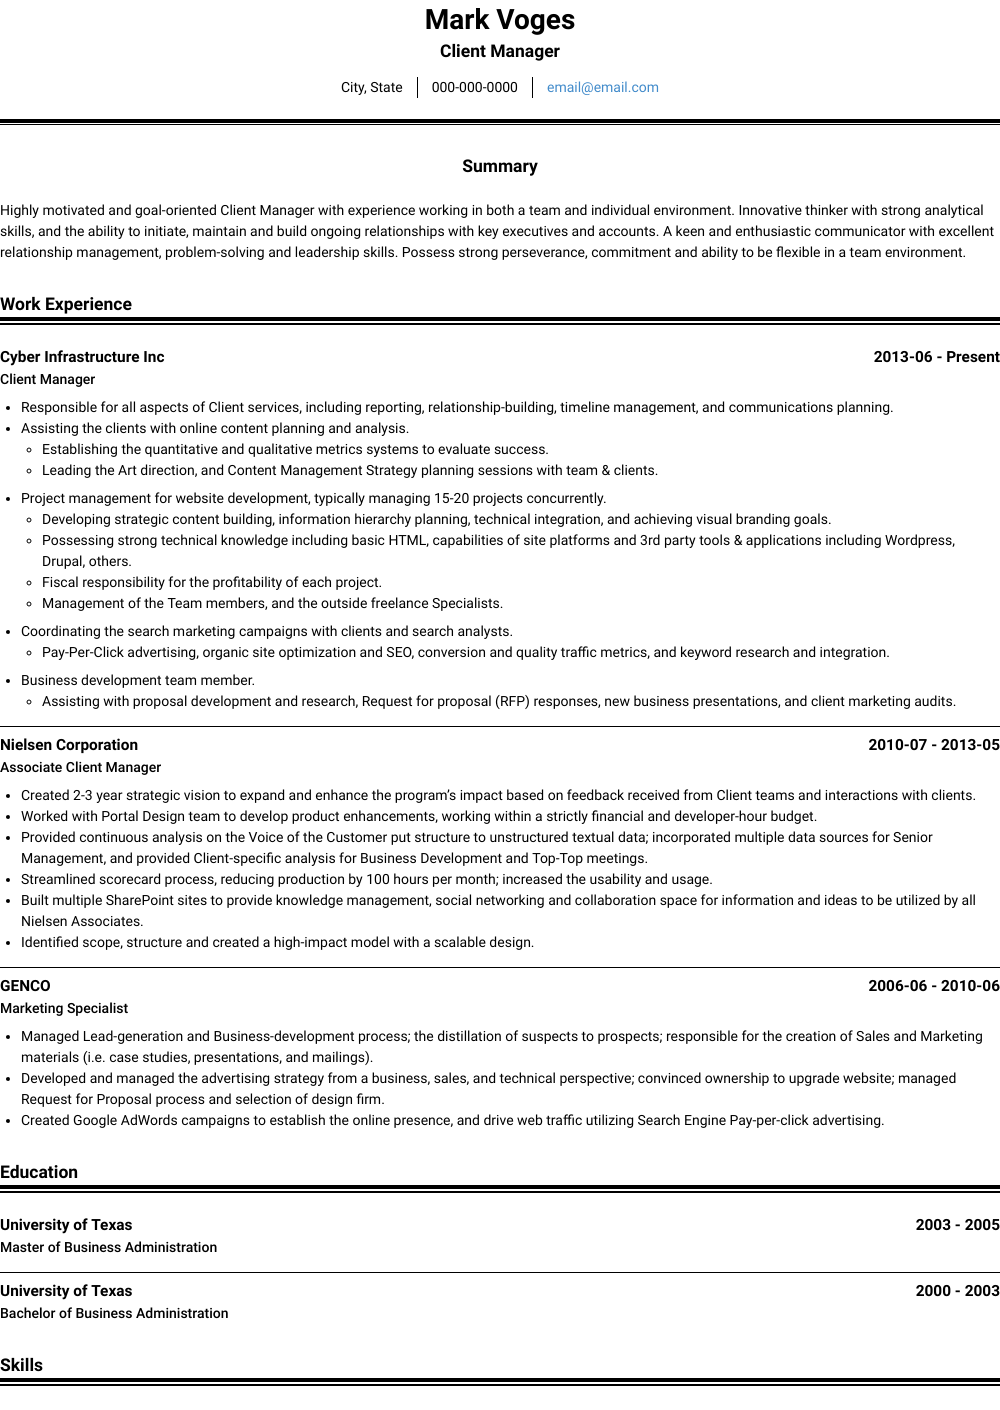 Client Manager Resume Sample